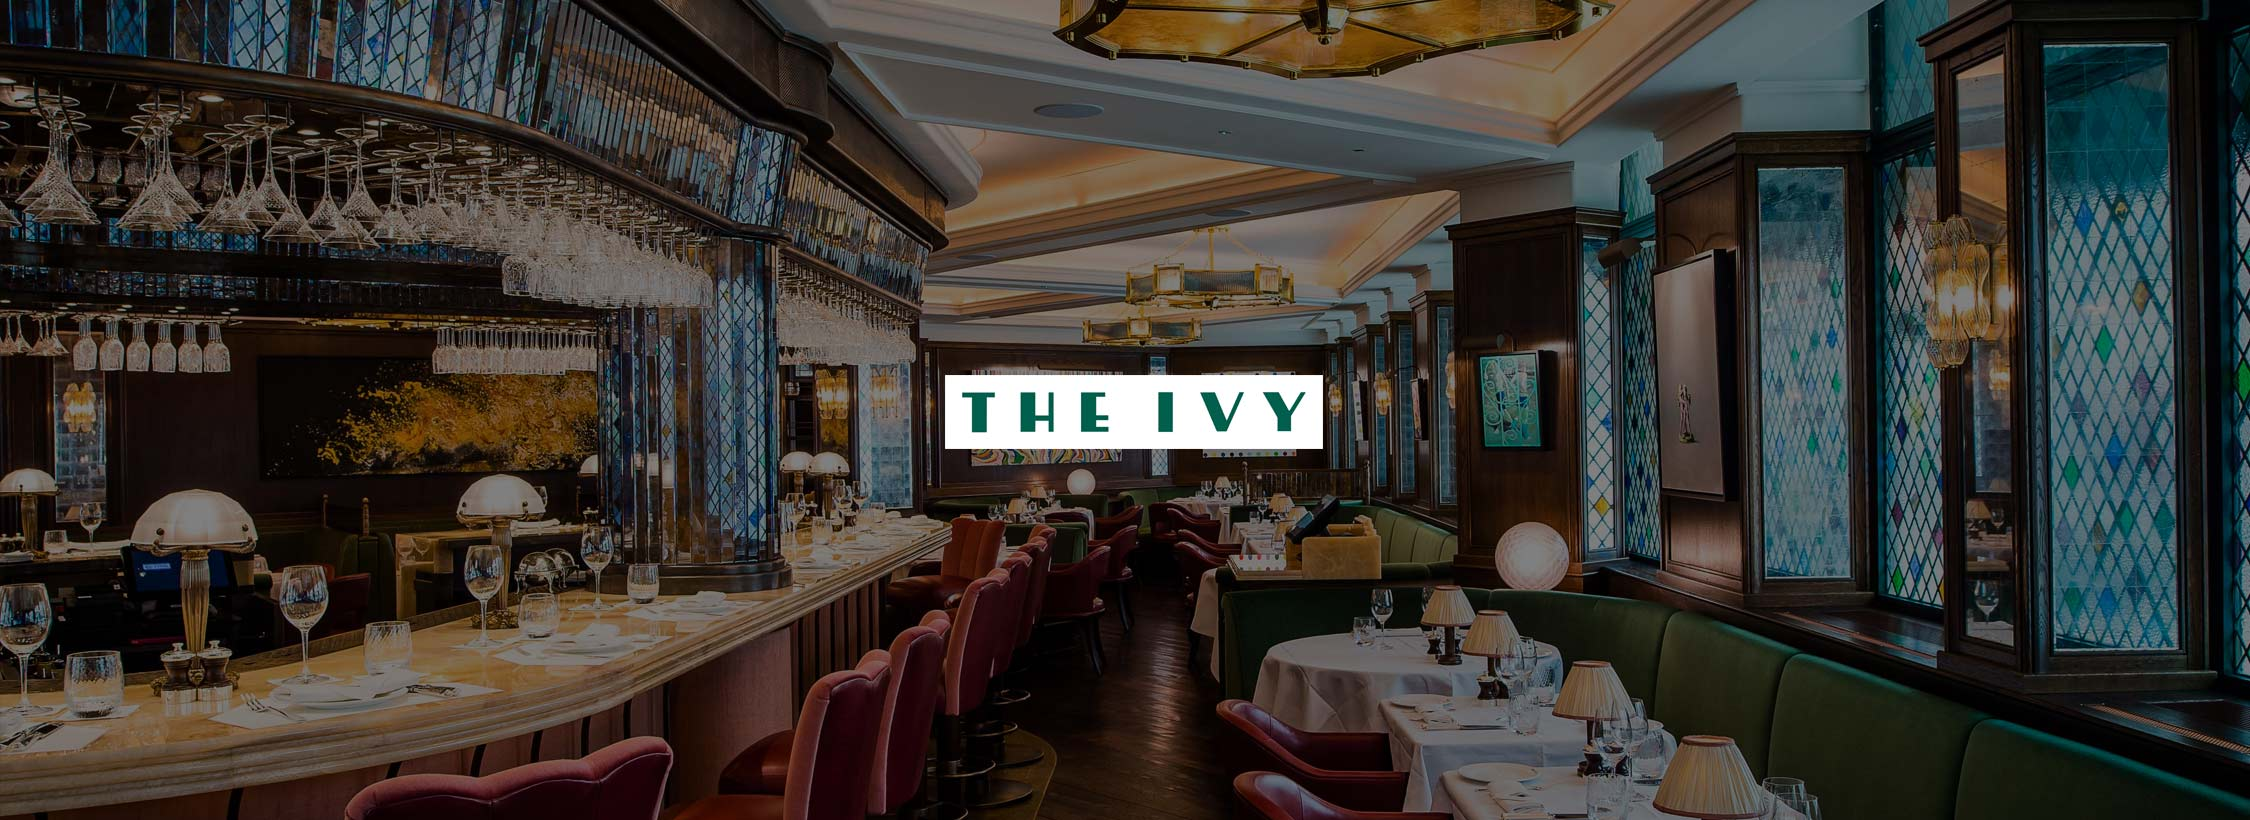 restaurants-supplied-the-ivy-bg